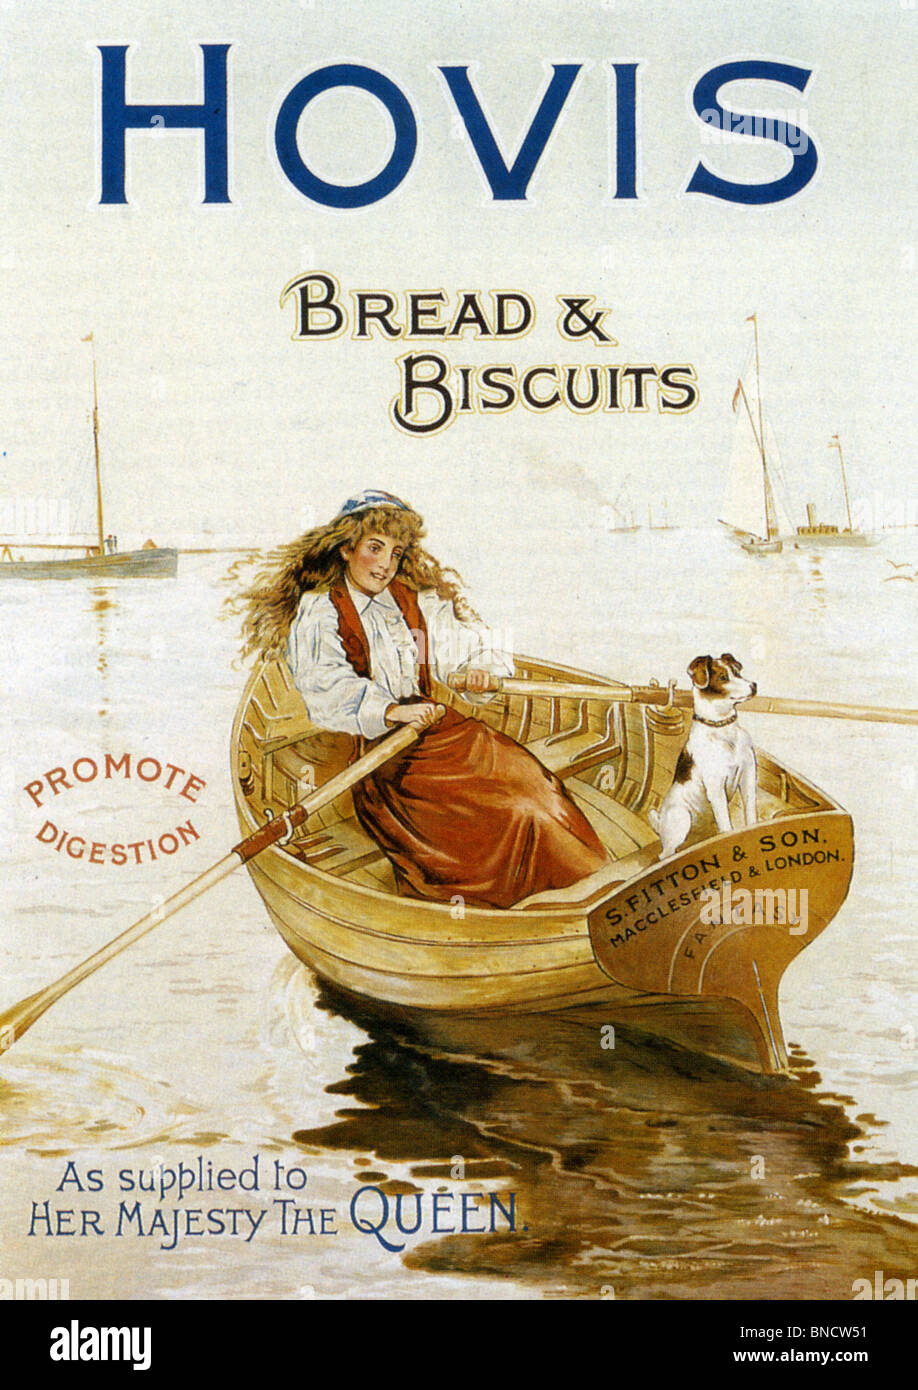 HOVIS advert about 1900 - Stock Image